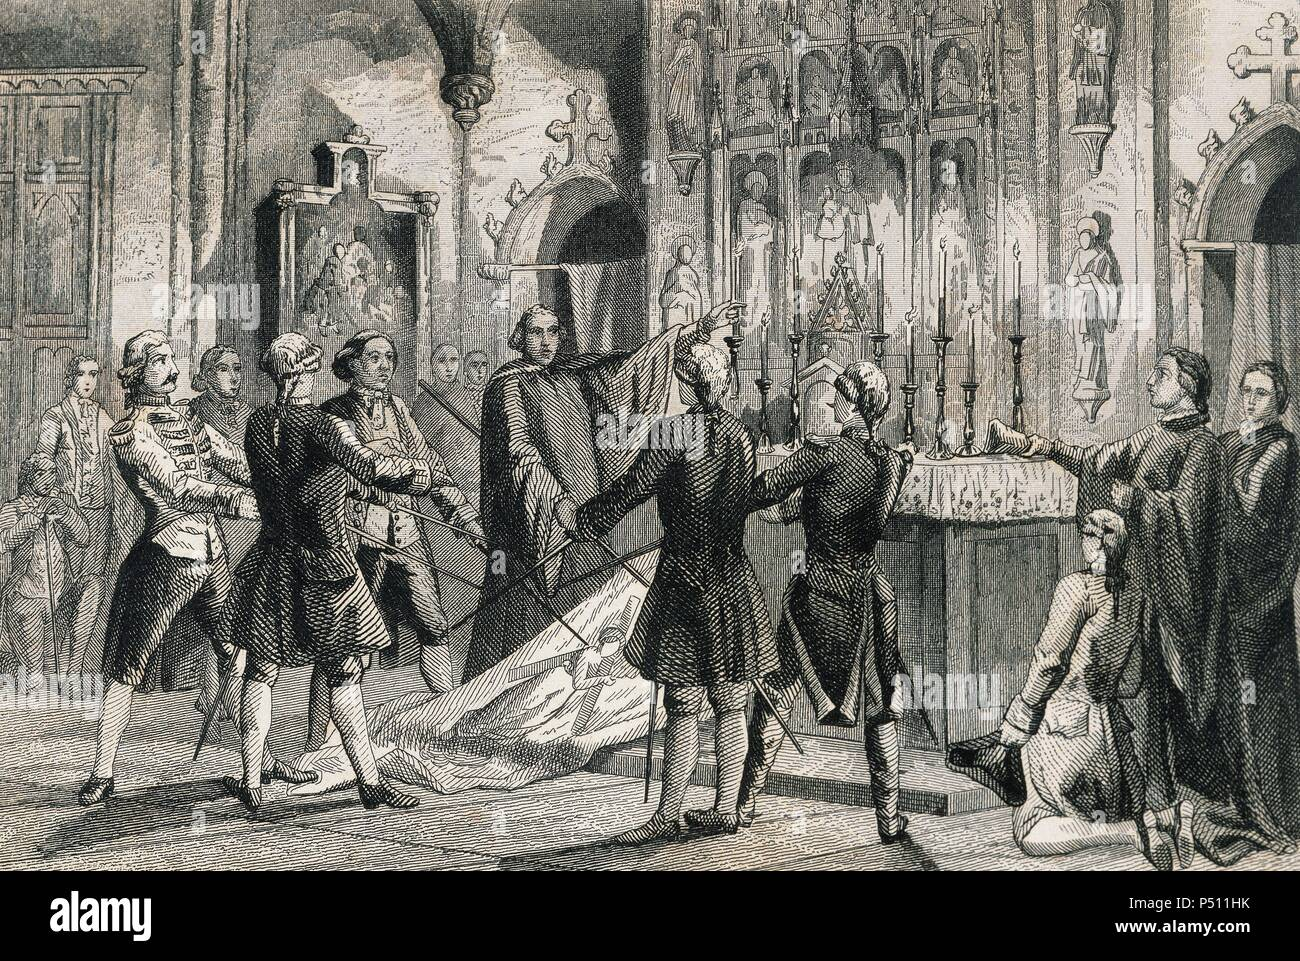 War of Spanish Succession (1702-1715). Oath of the captains of Barcelona who commands the troops of Antonio de Villarroel, Commander in Chief of the Army of Catalonia. Engraving by Urbadieta and J. Nicolau. 19th century. Stock Photo